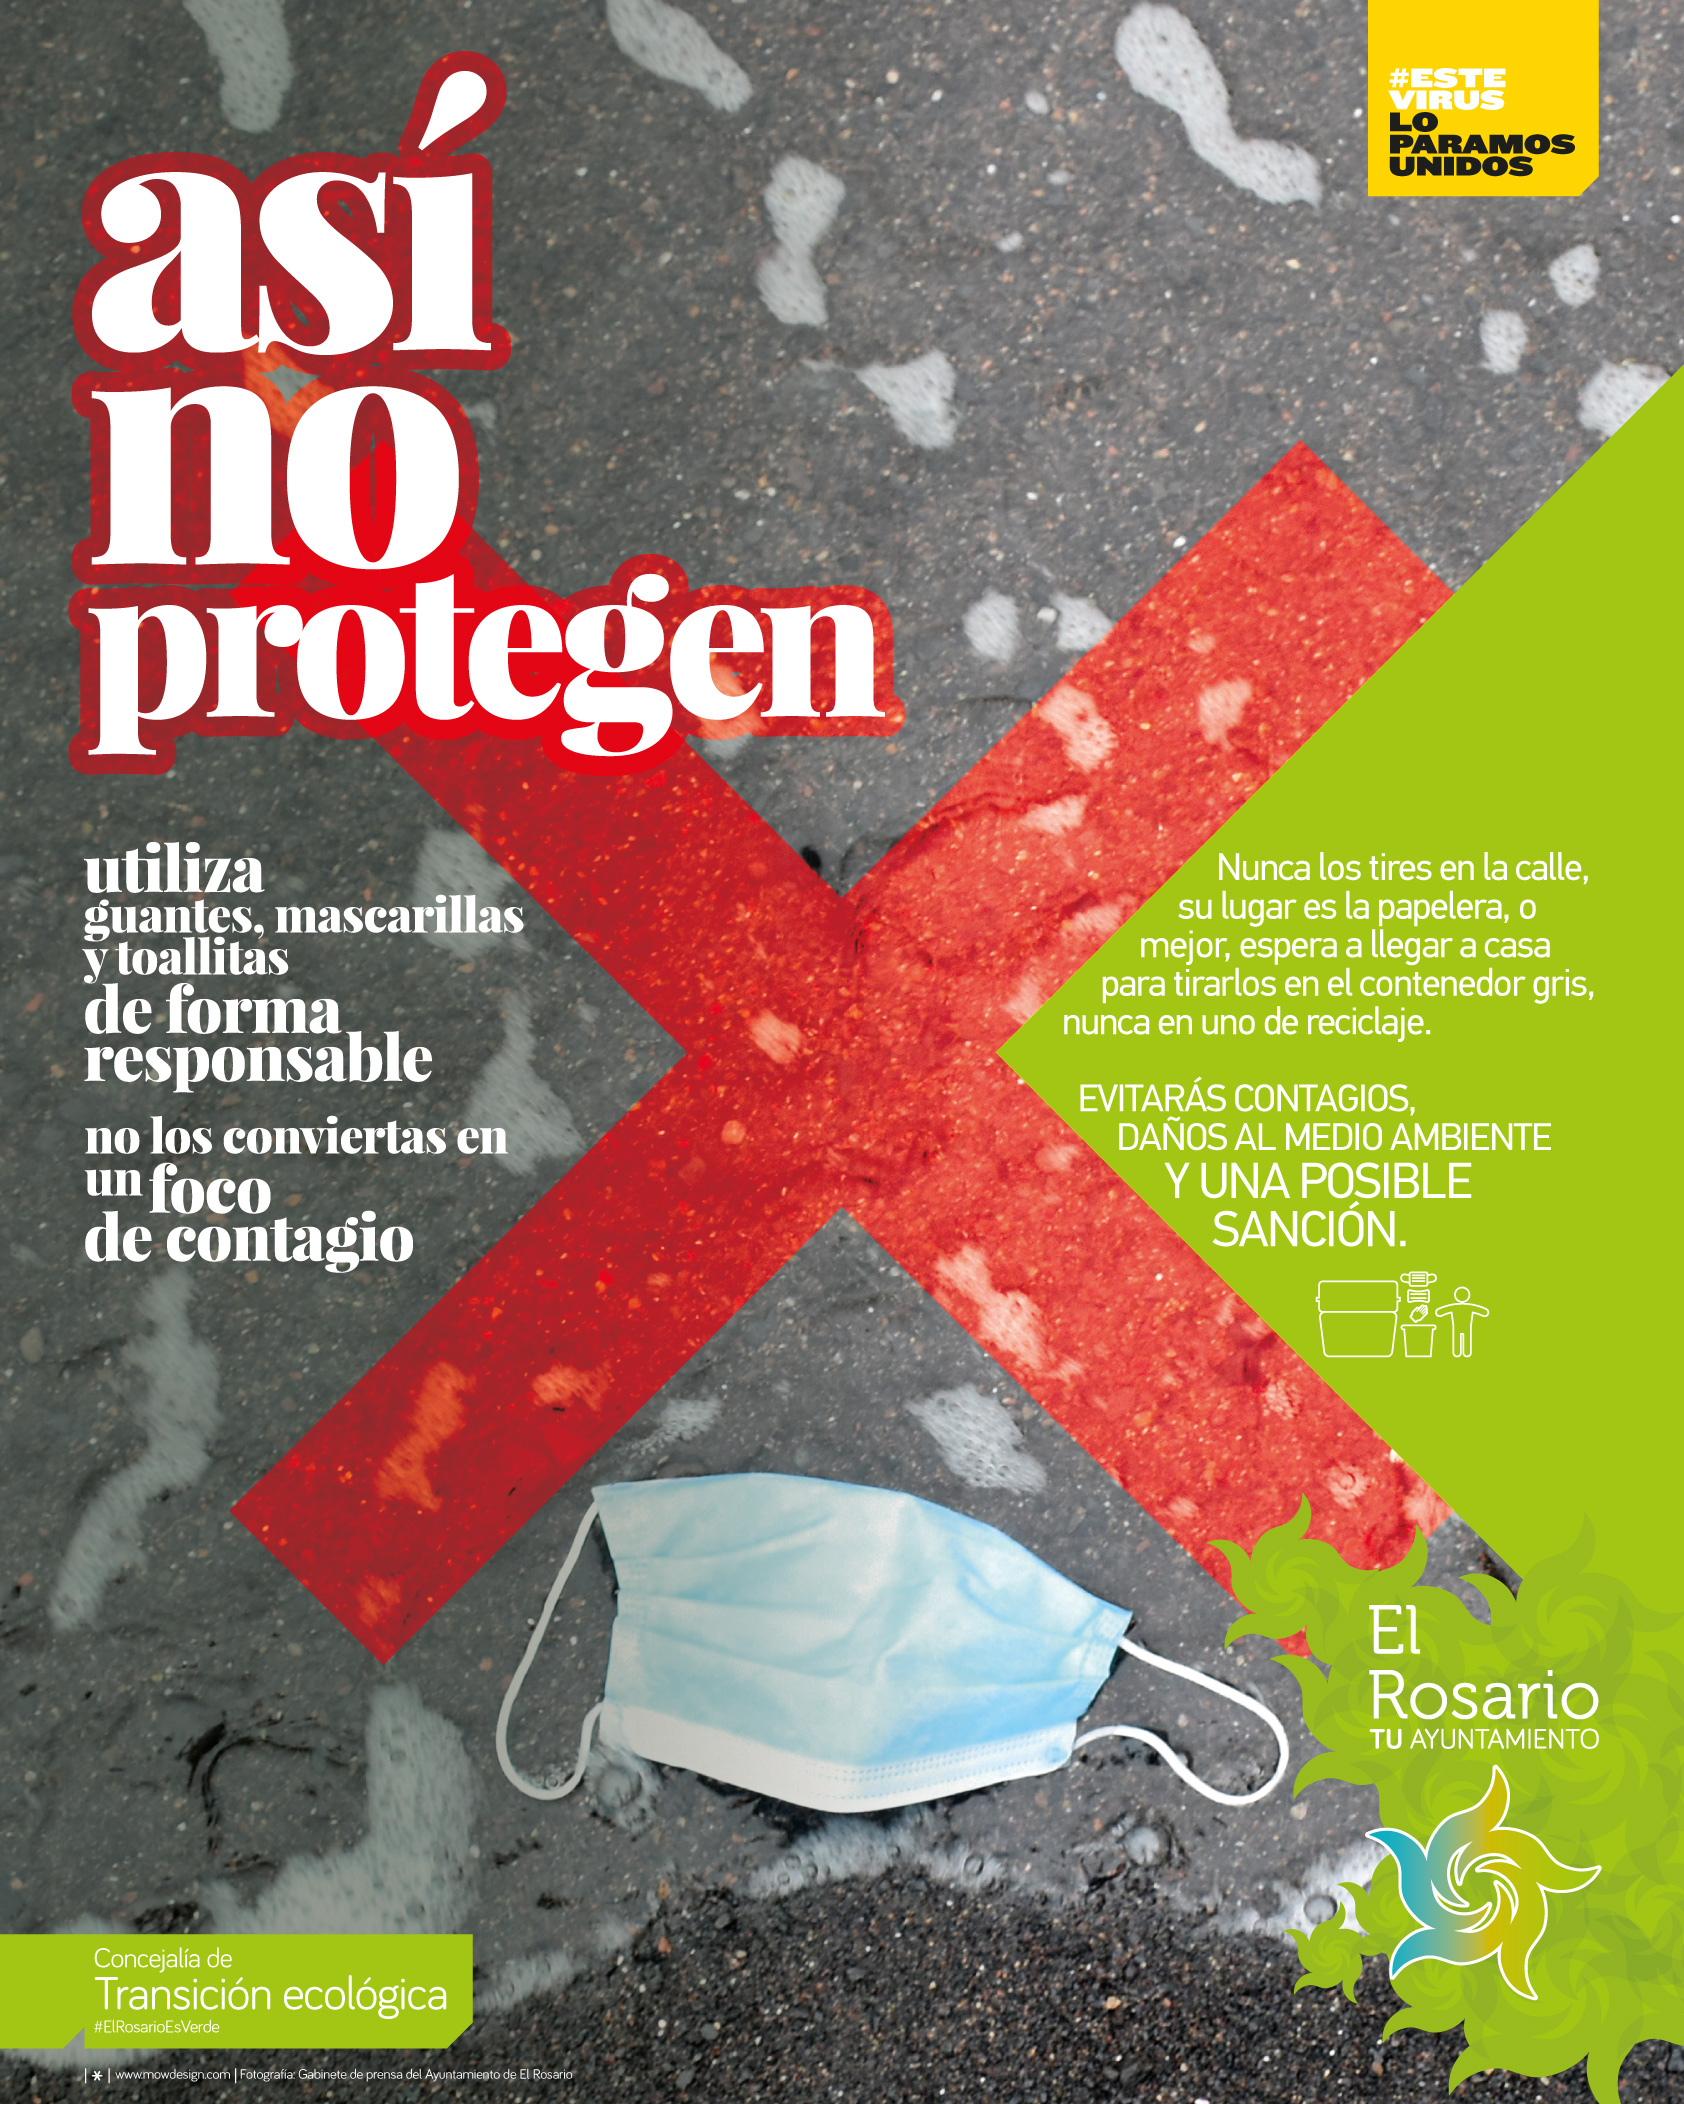 USO_RESPONSABLE_MASCARILLAS-v02_beach-20200000-CARTEL_A3-20200714-01af-redes